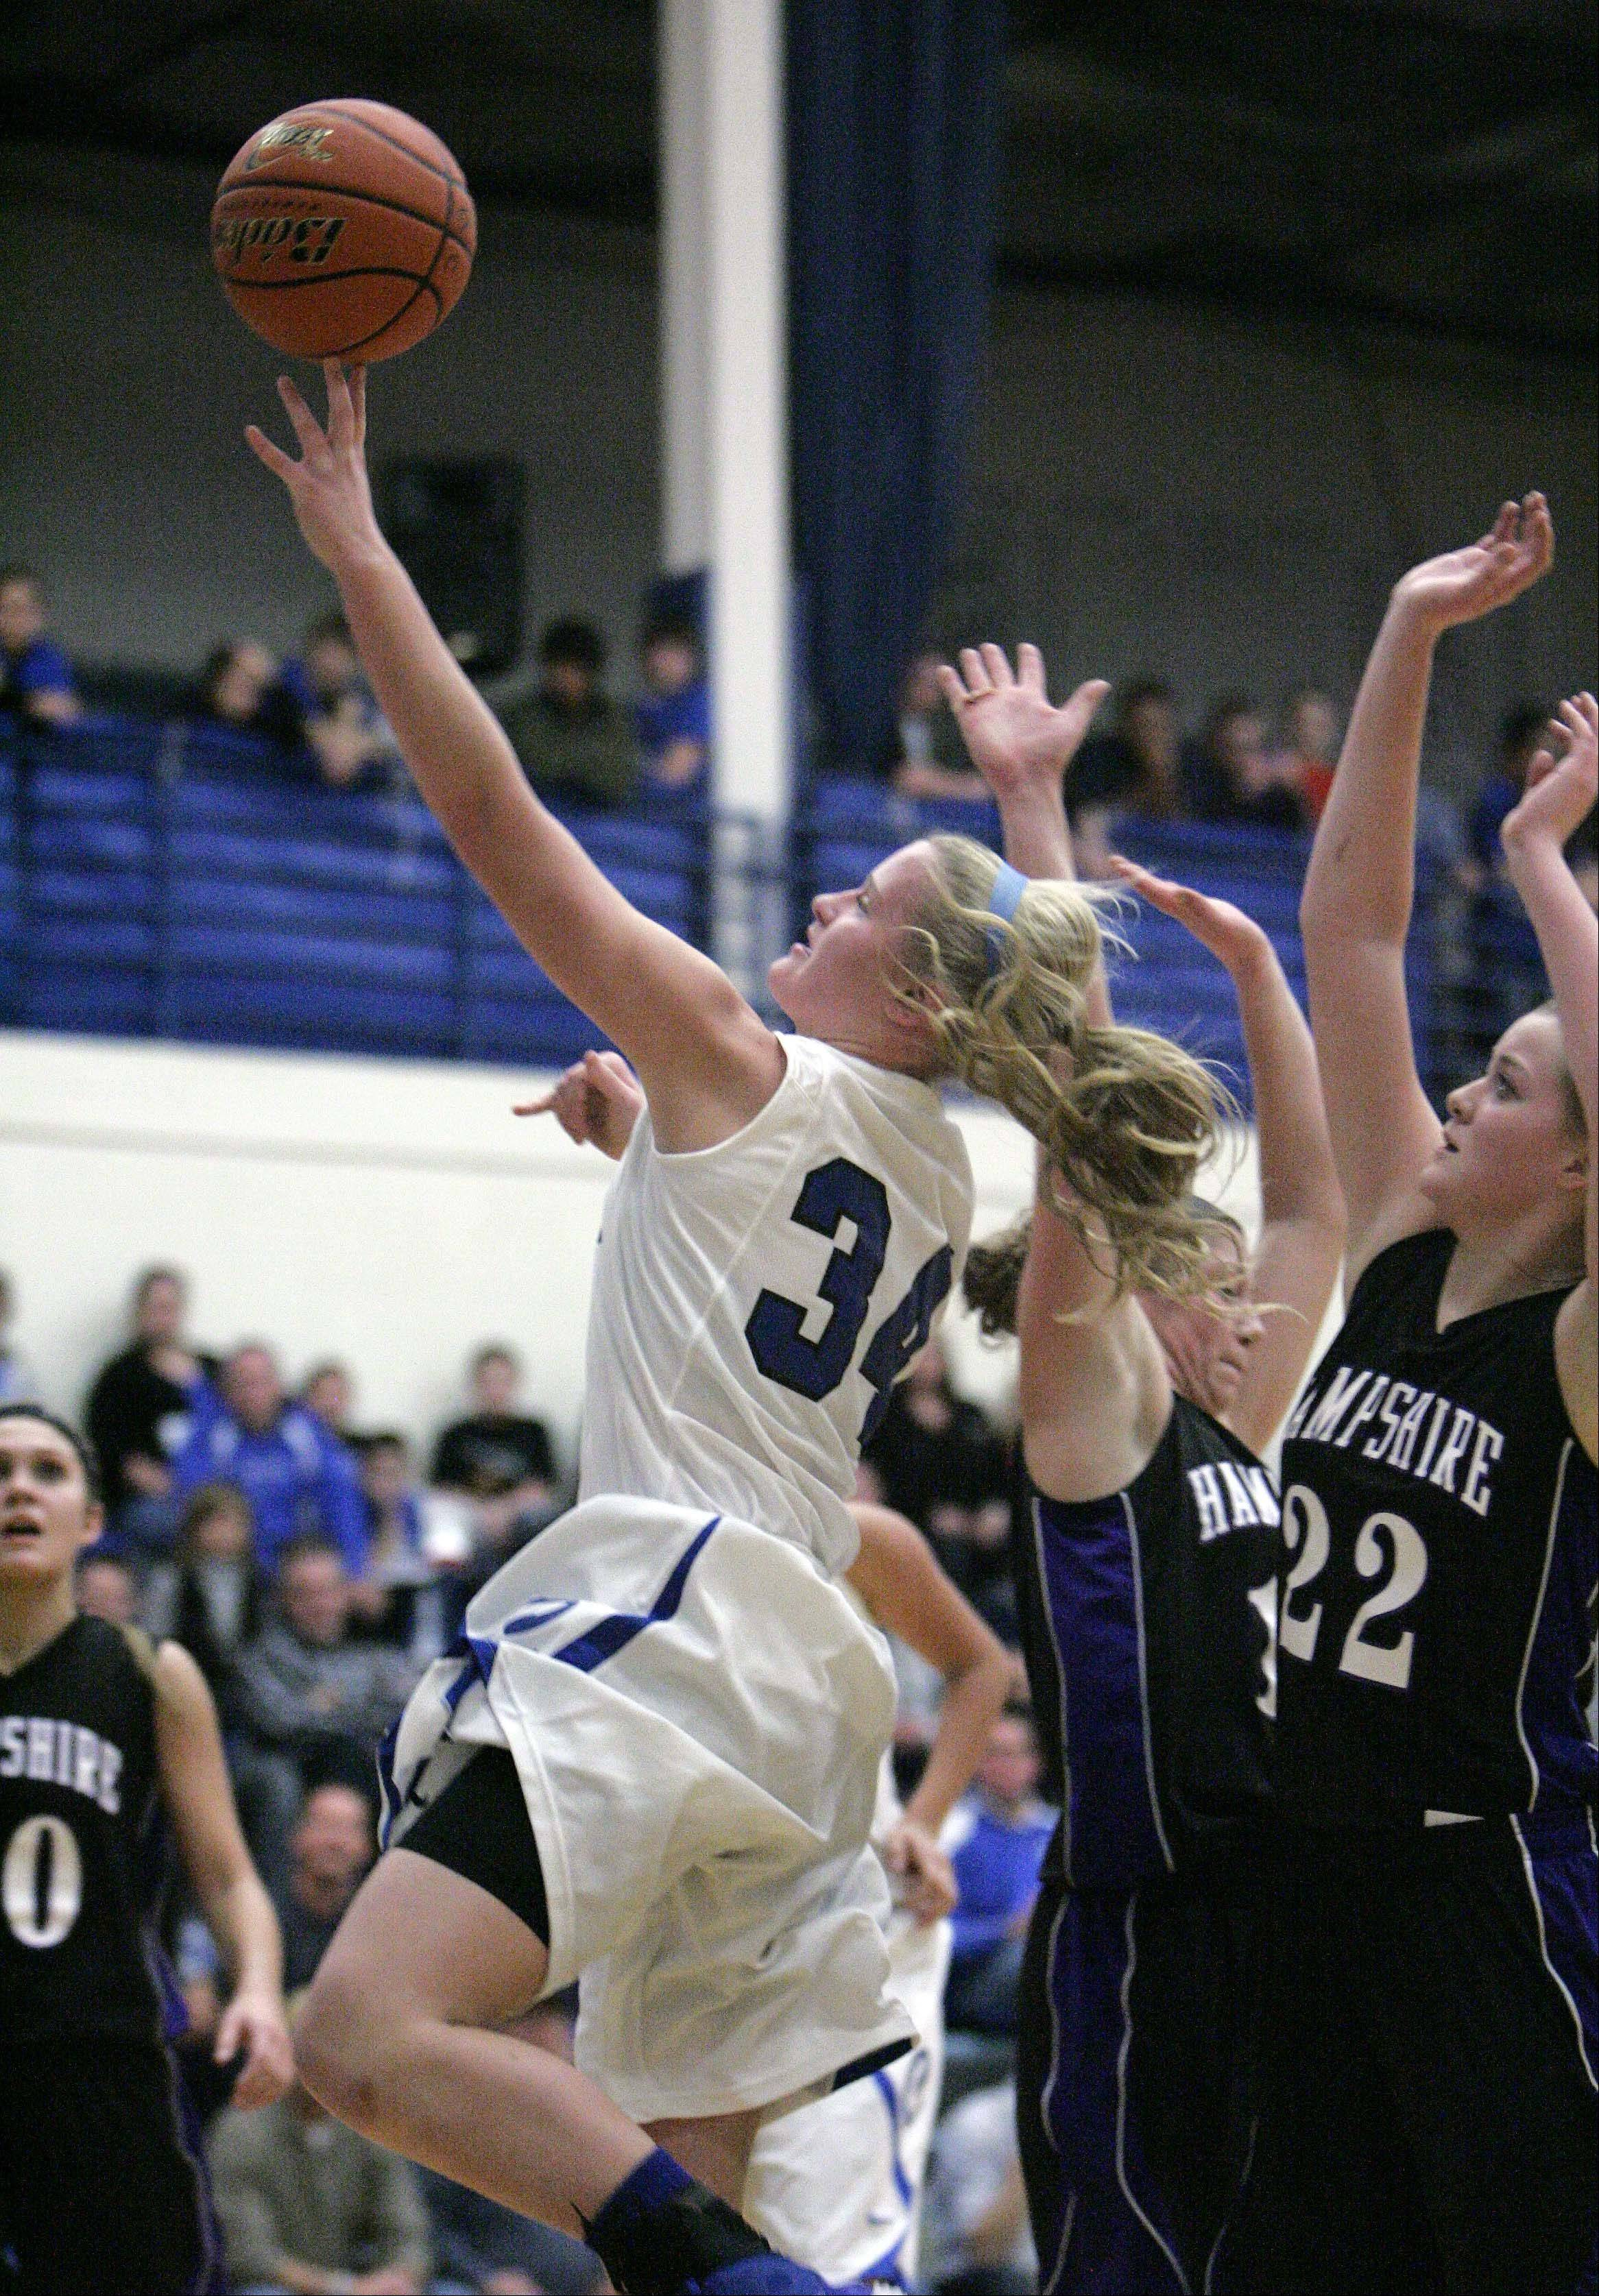 Burlington Central's Samantha Pryor (34) goes to the hoop against Hampshire during girls basketball Saturday December 8, 2012.